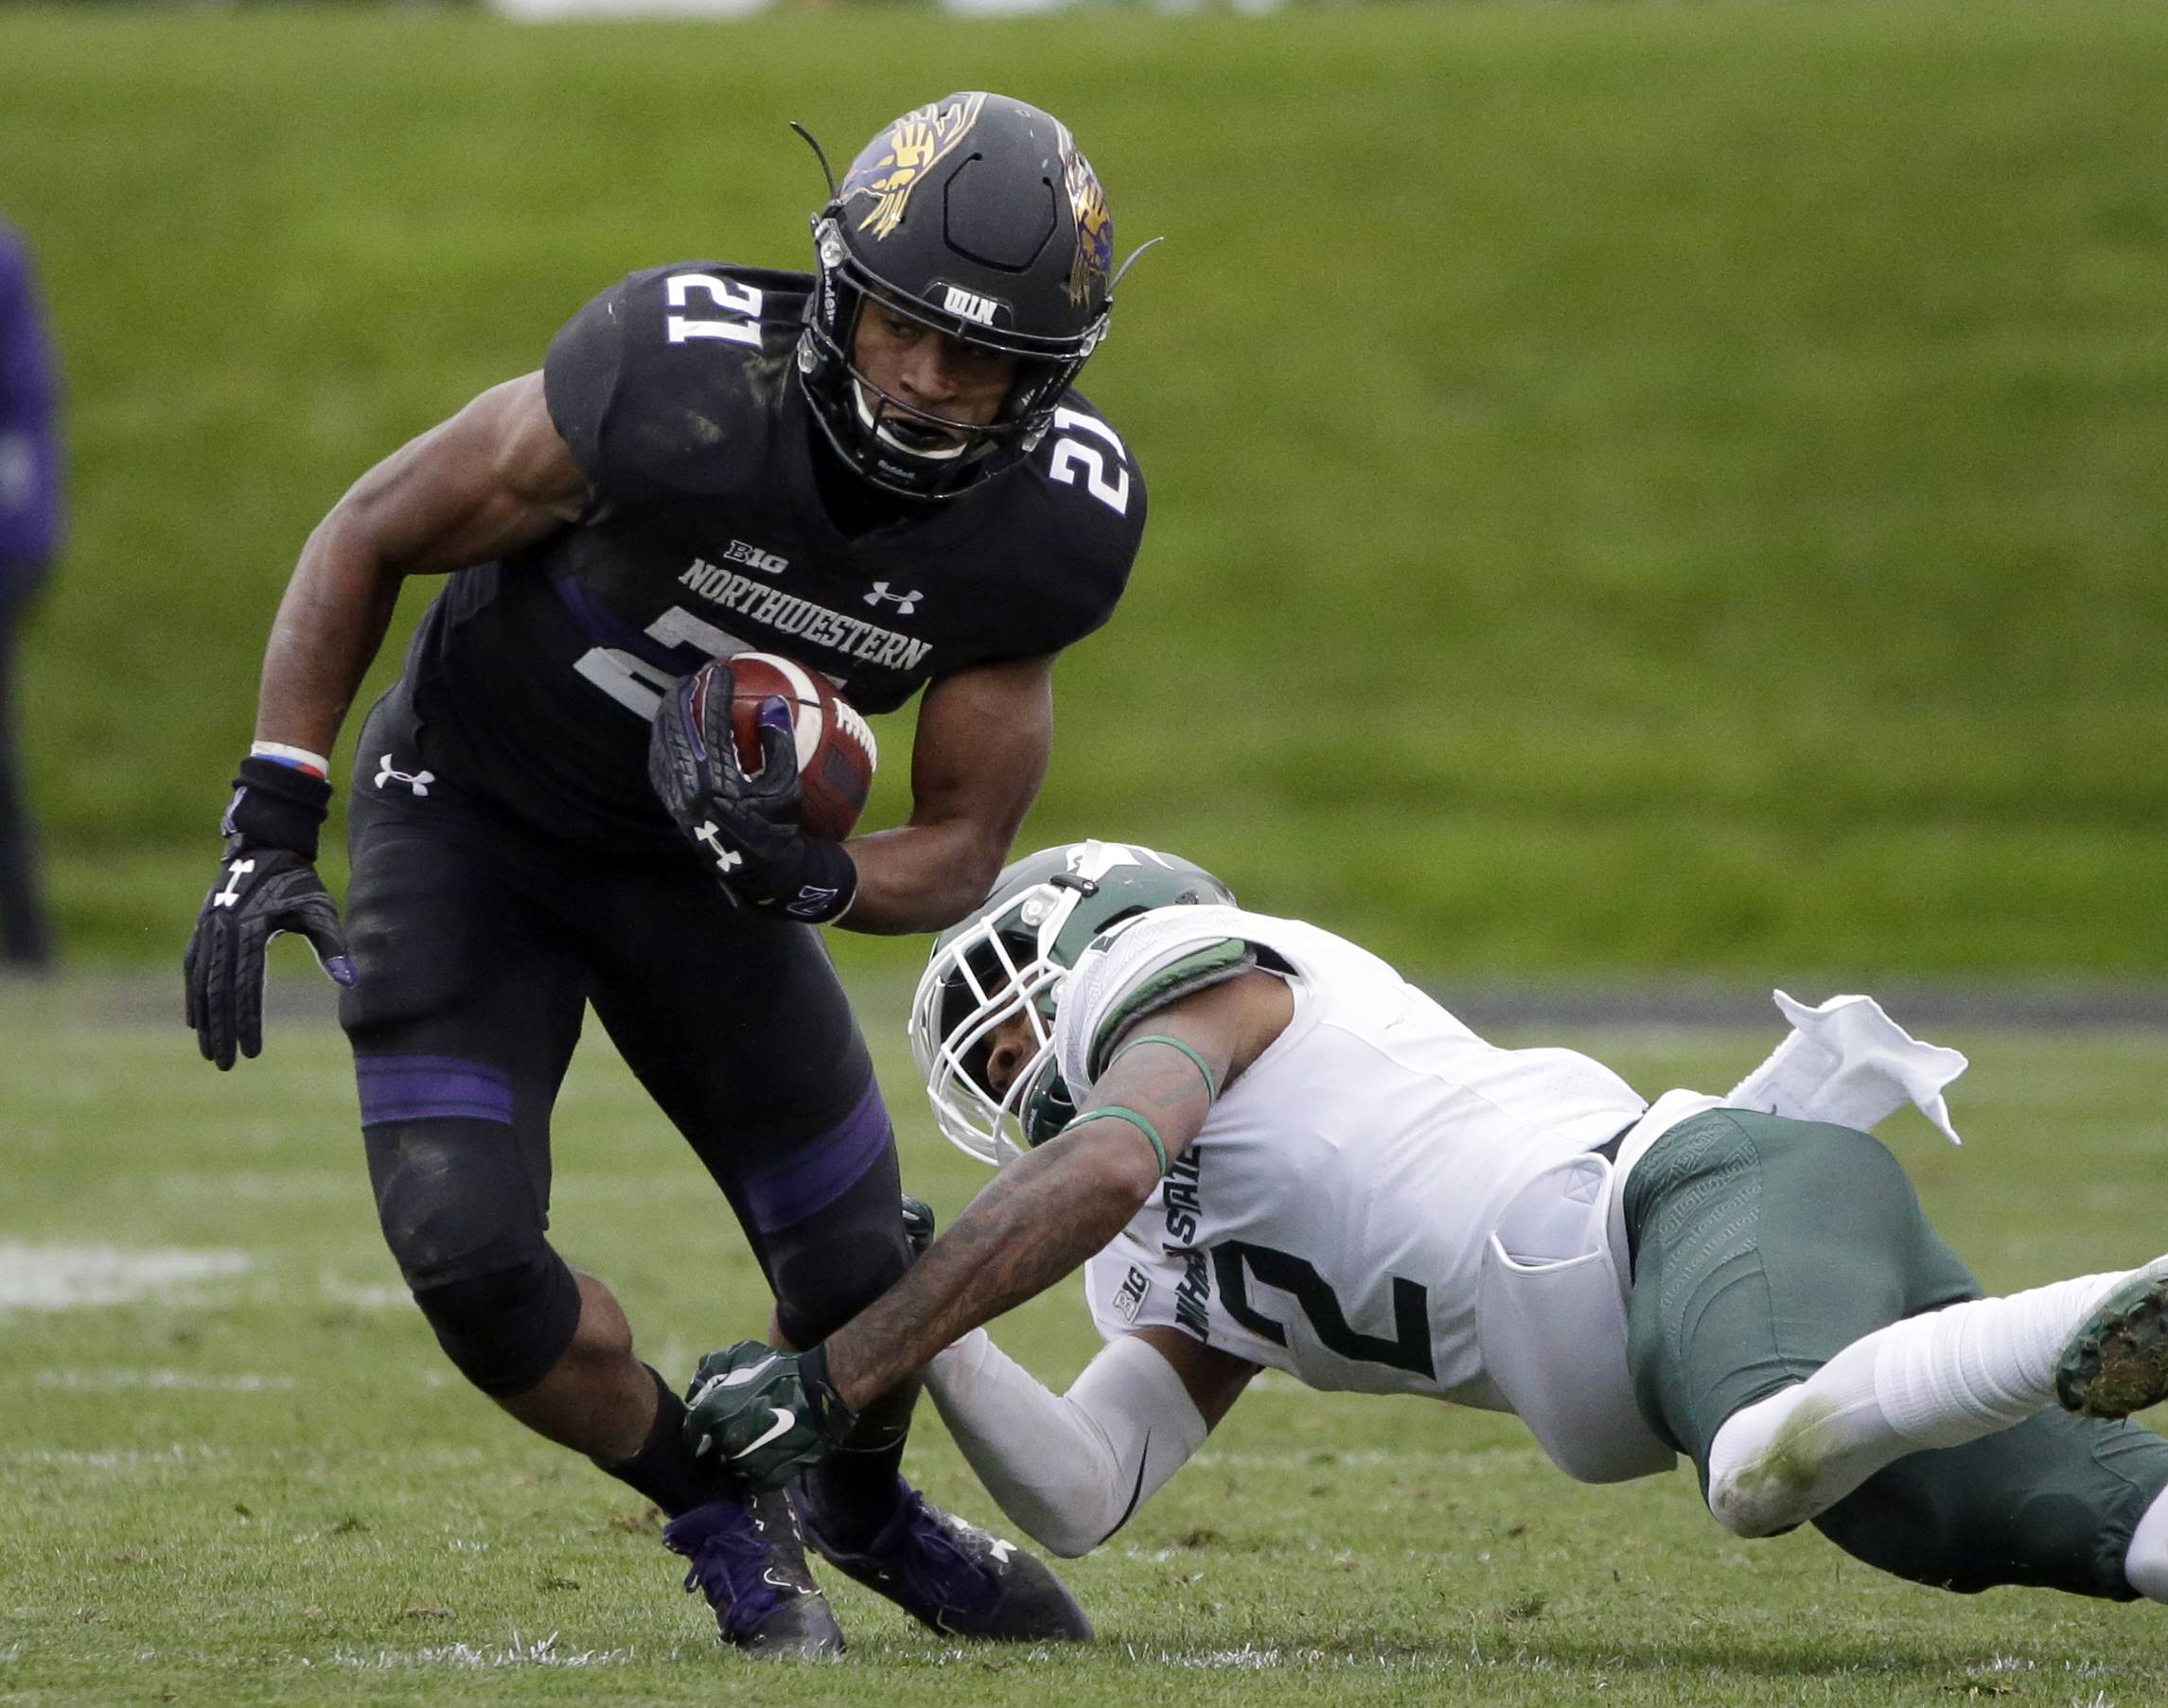 Northwestern running back Justin Jackson, left, is tackled by Michigan State cornerback Justin Layne during the first half of last week's win over Michigan State. Northwestern and Nebraska both won thrillers last week, and they could be in for another fantastic finish Saturday if this meeting is like their others at Memorial Stadium.